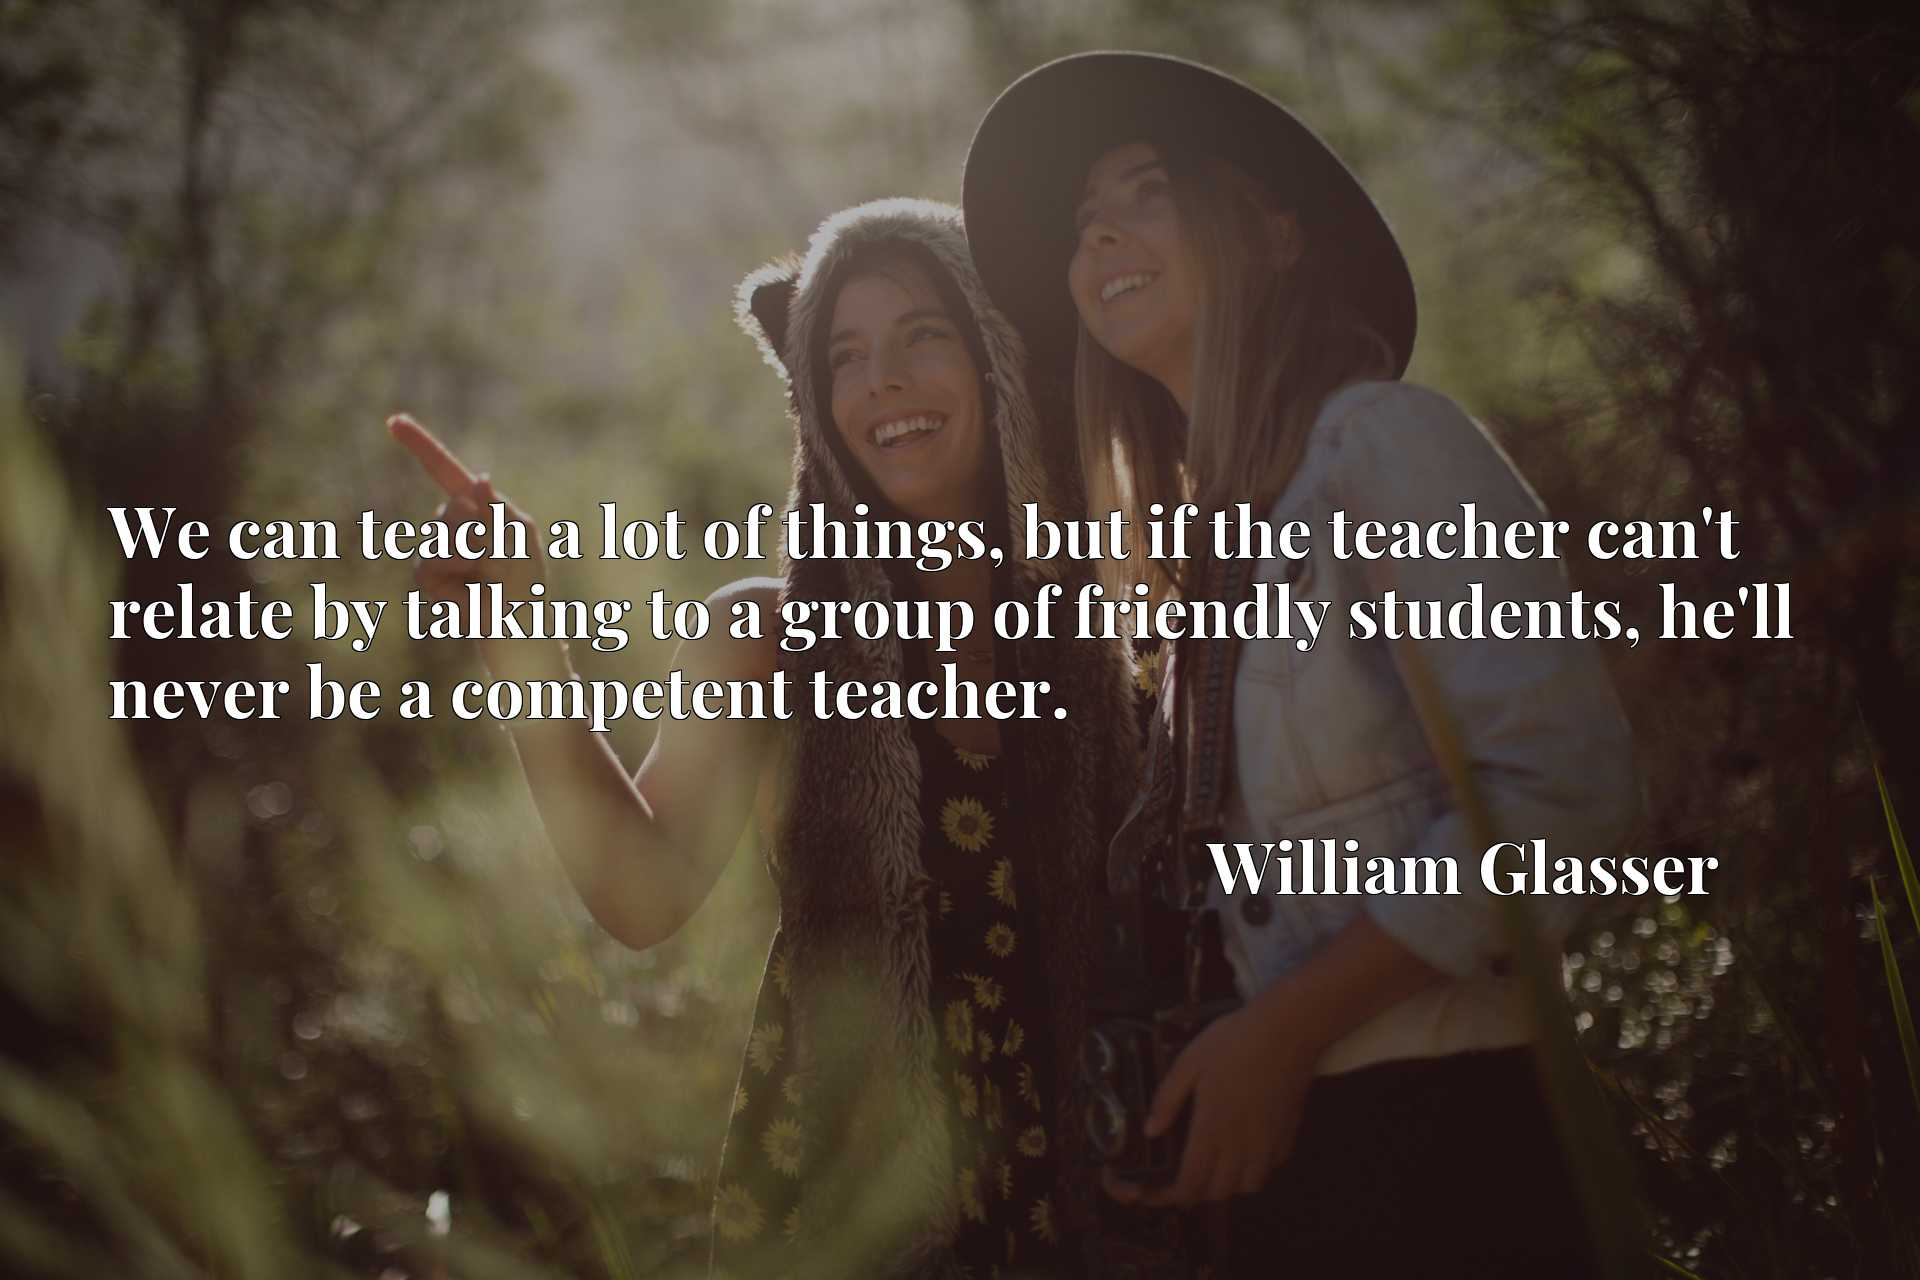 Quote Picture :We can teach a lot of things, but if the teacher can't relate by talking to a group of friendly students, he'll never be a competent teacher.